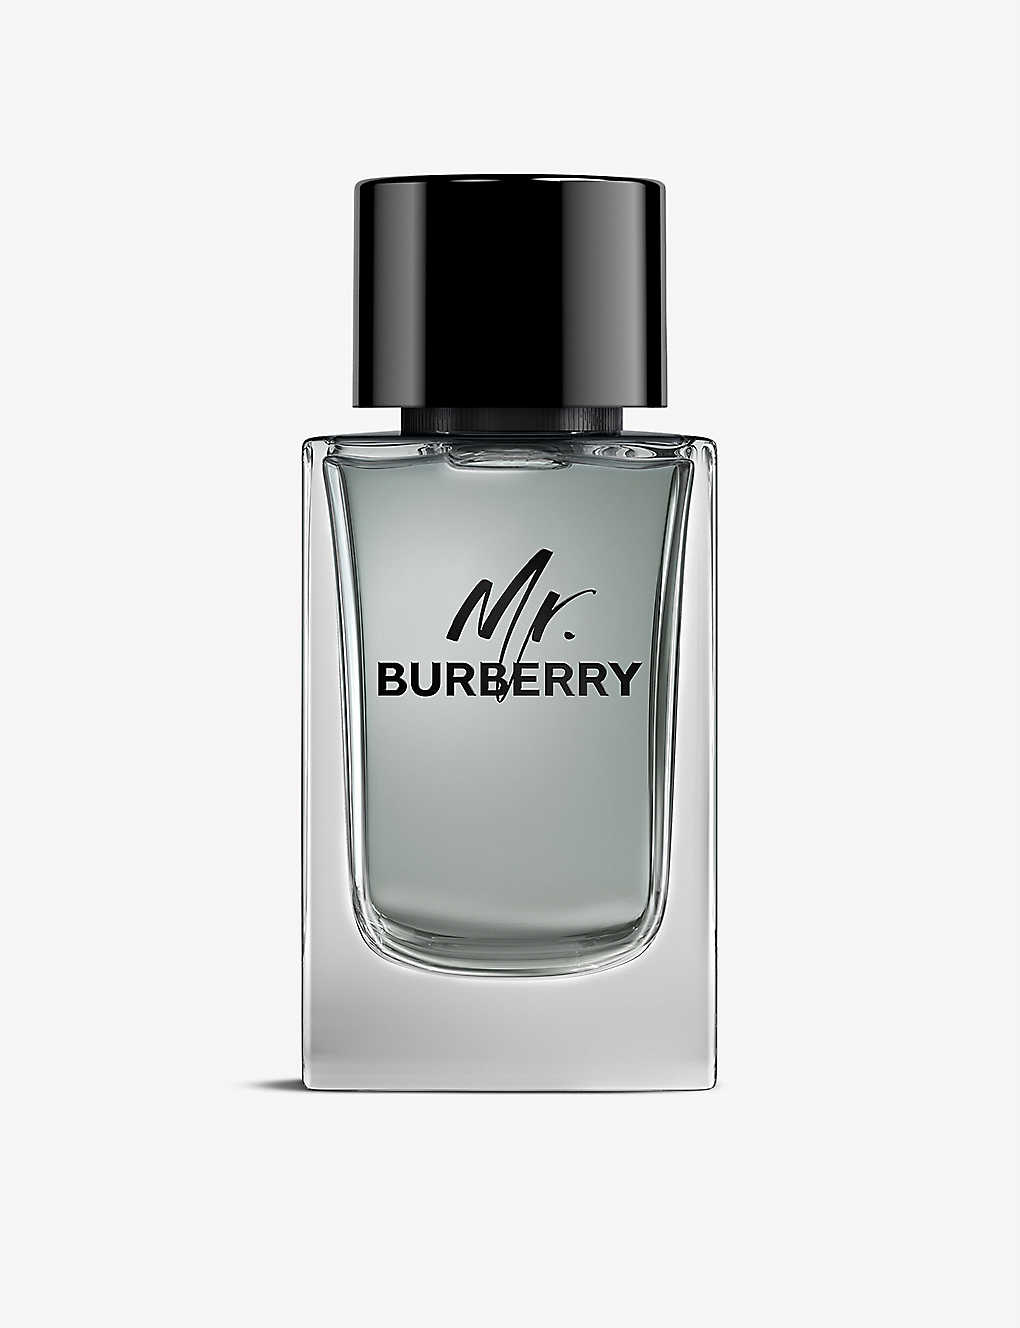 BURBERRY:Mr. Burberry 淡雅香水